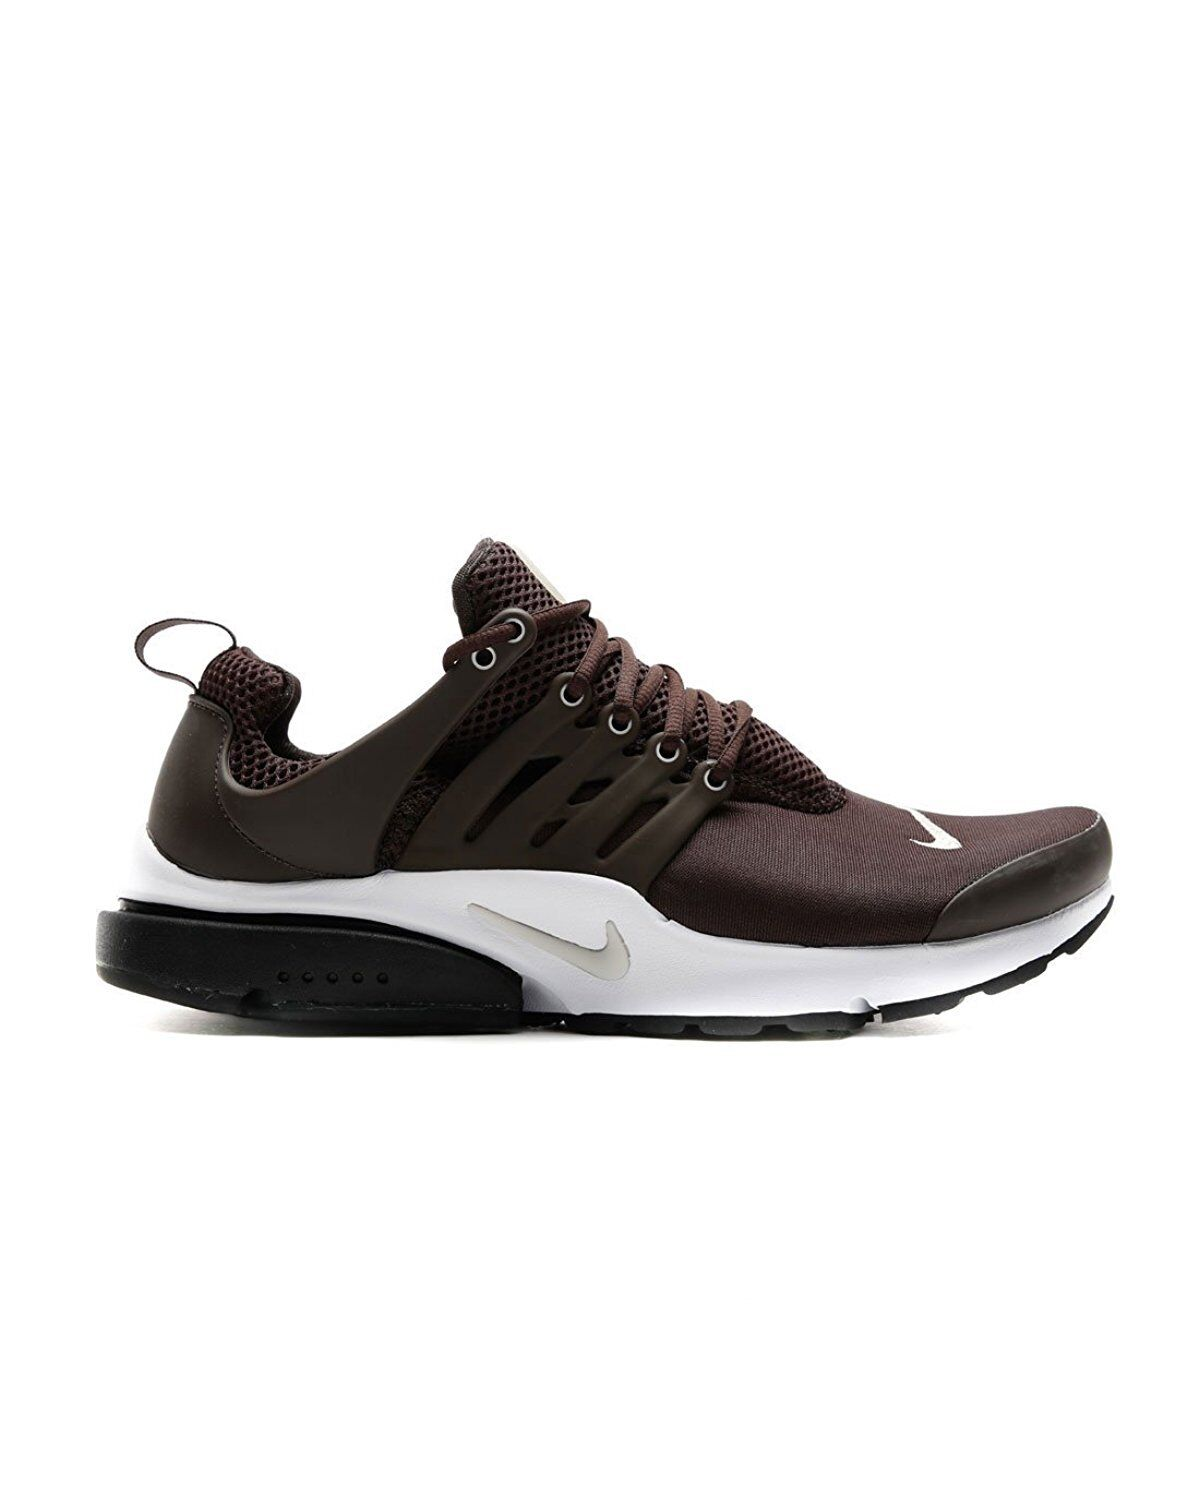 Nike Mens Air Presto Essential shoes Velvet Brown Light Bone 848187-200